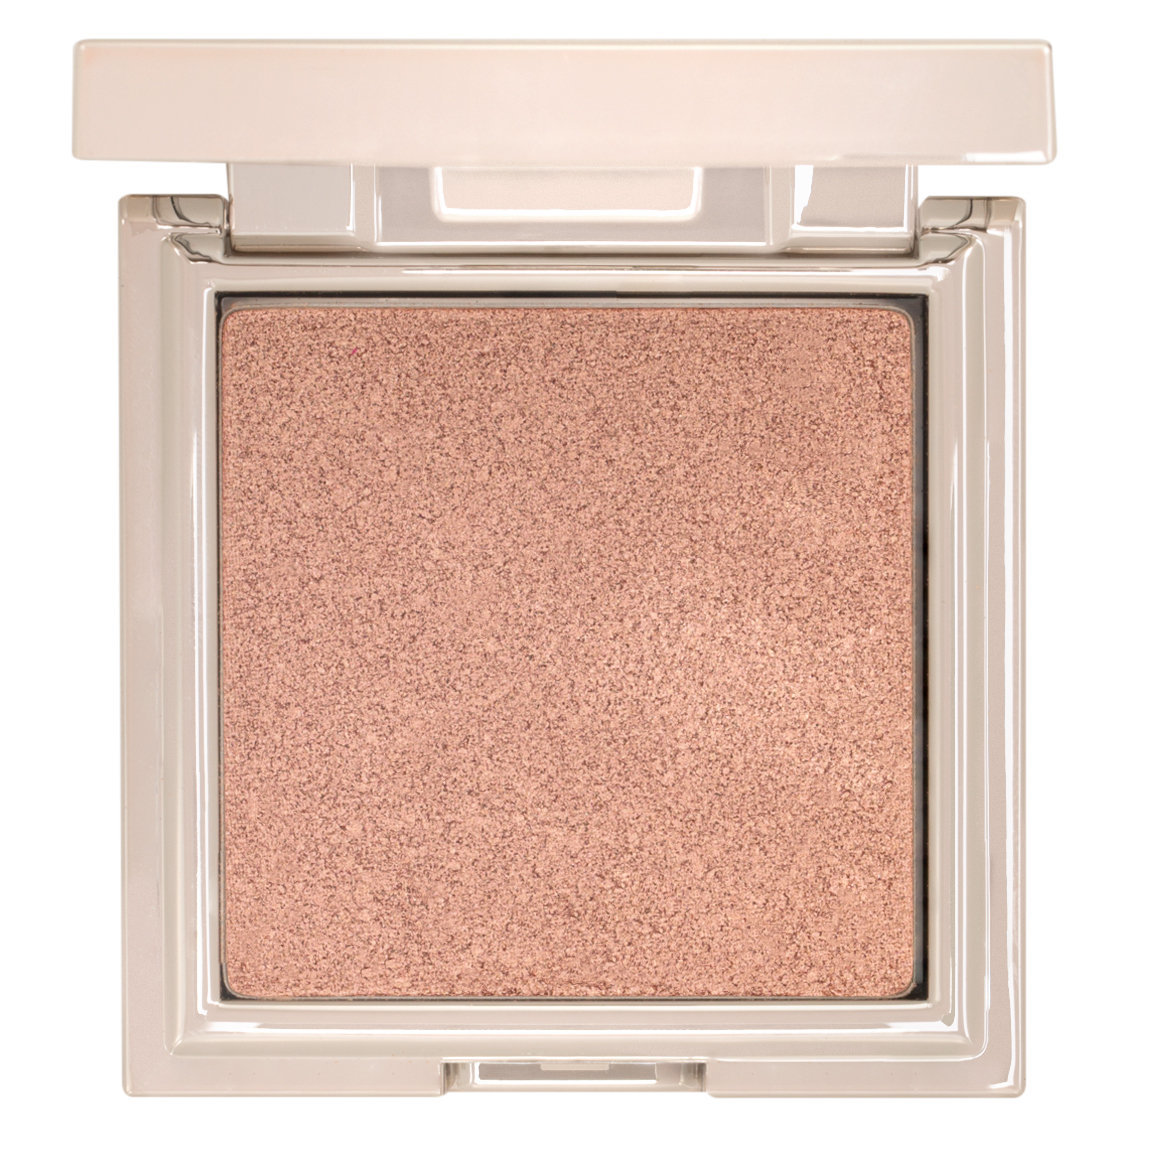 Jouer Cosmetics Powder Highlighter Topaz product smear.